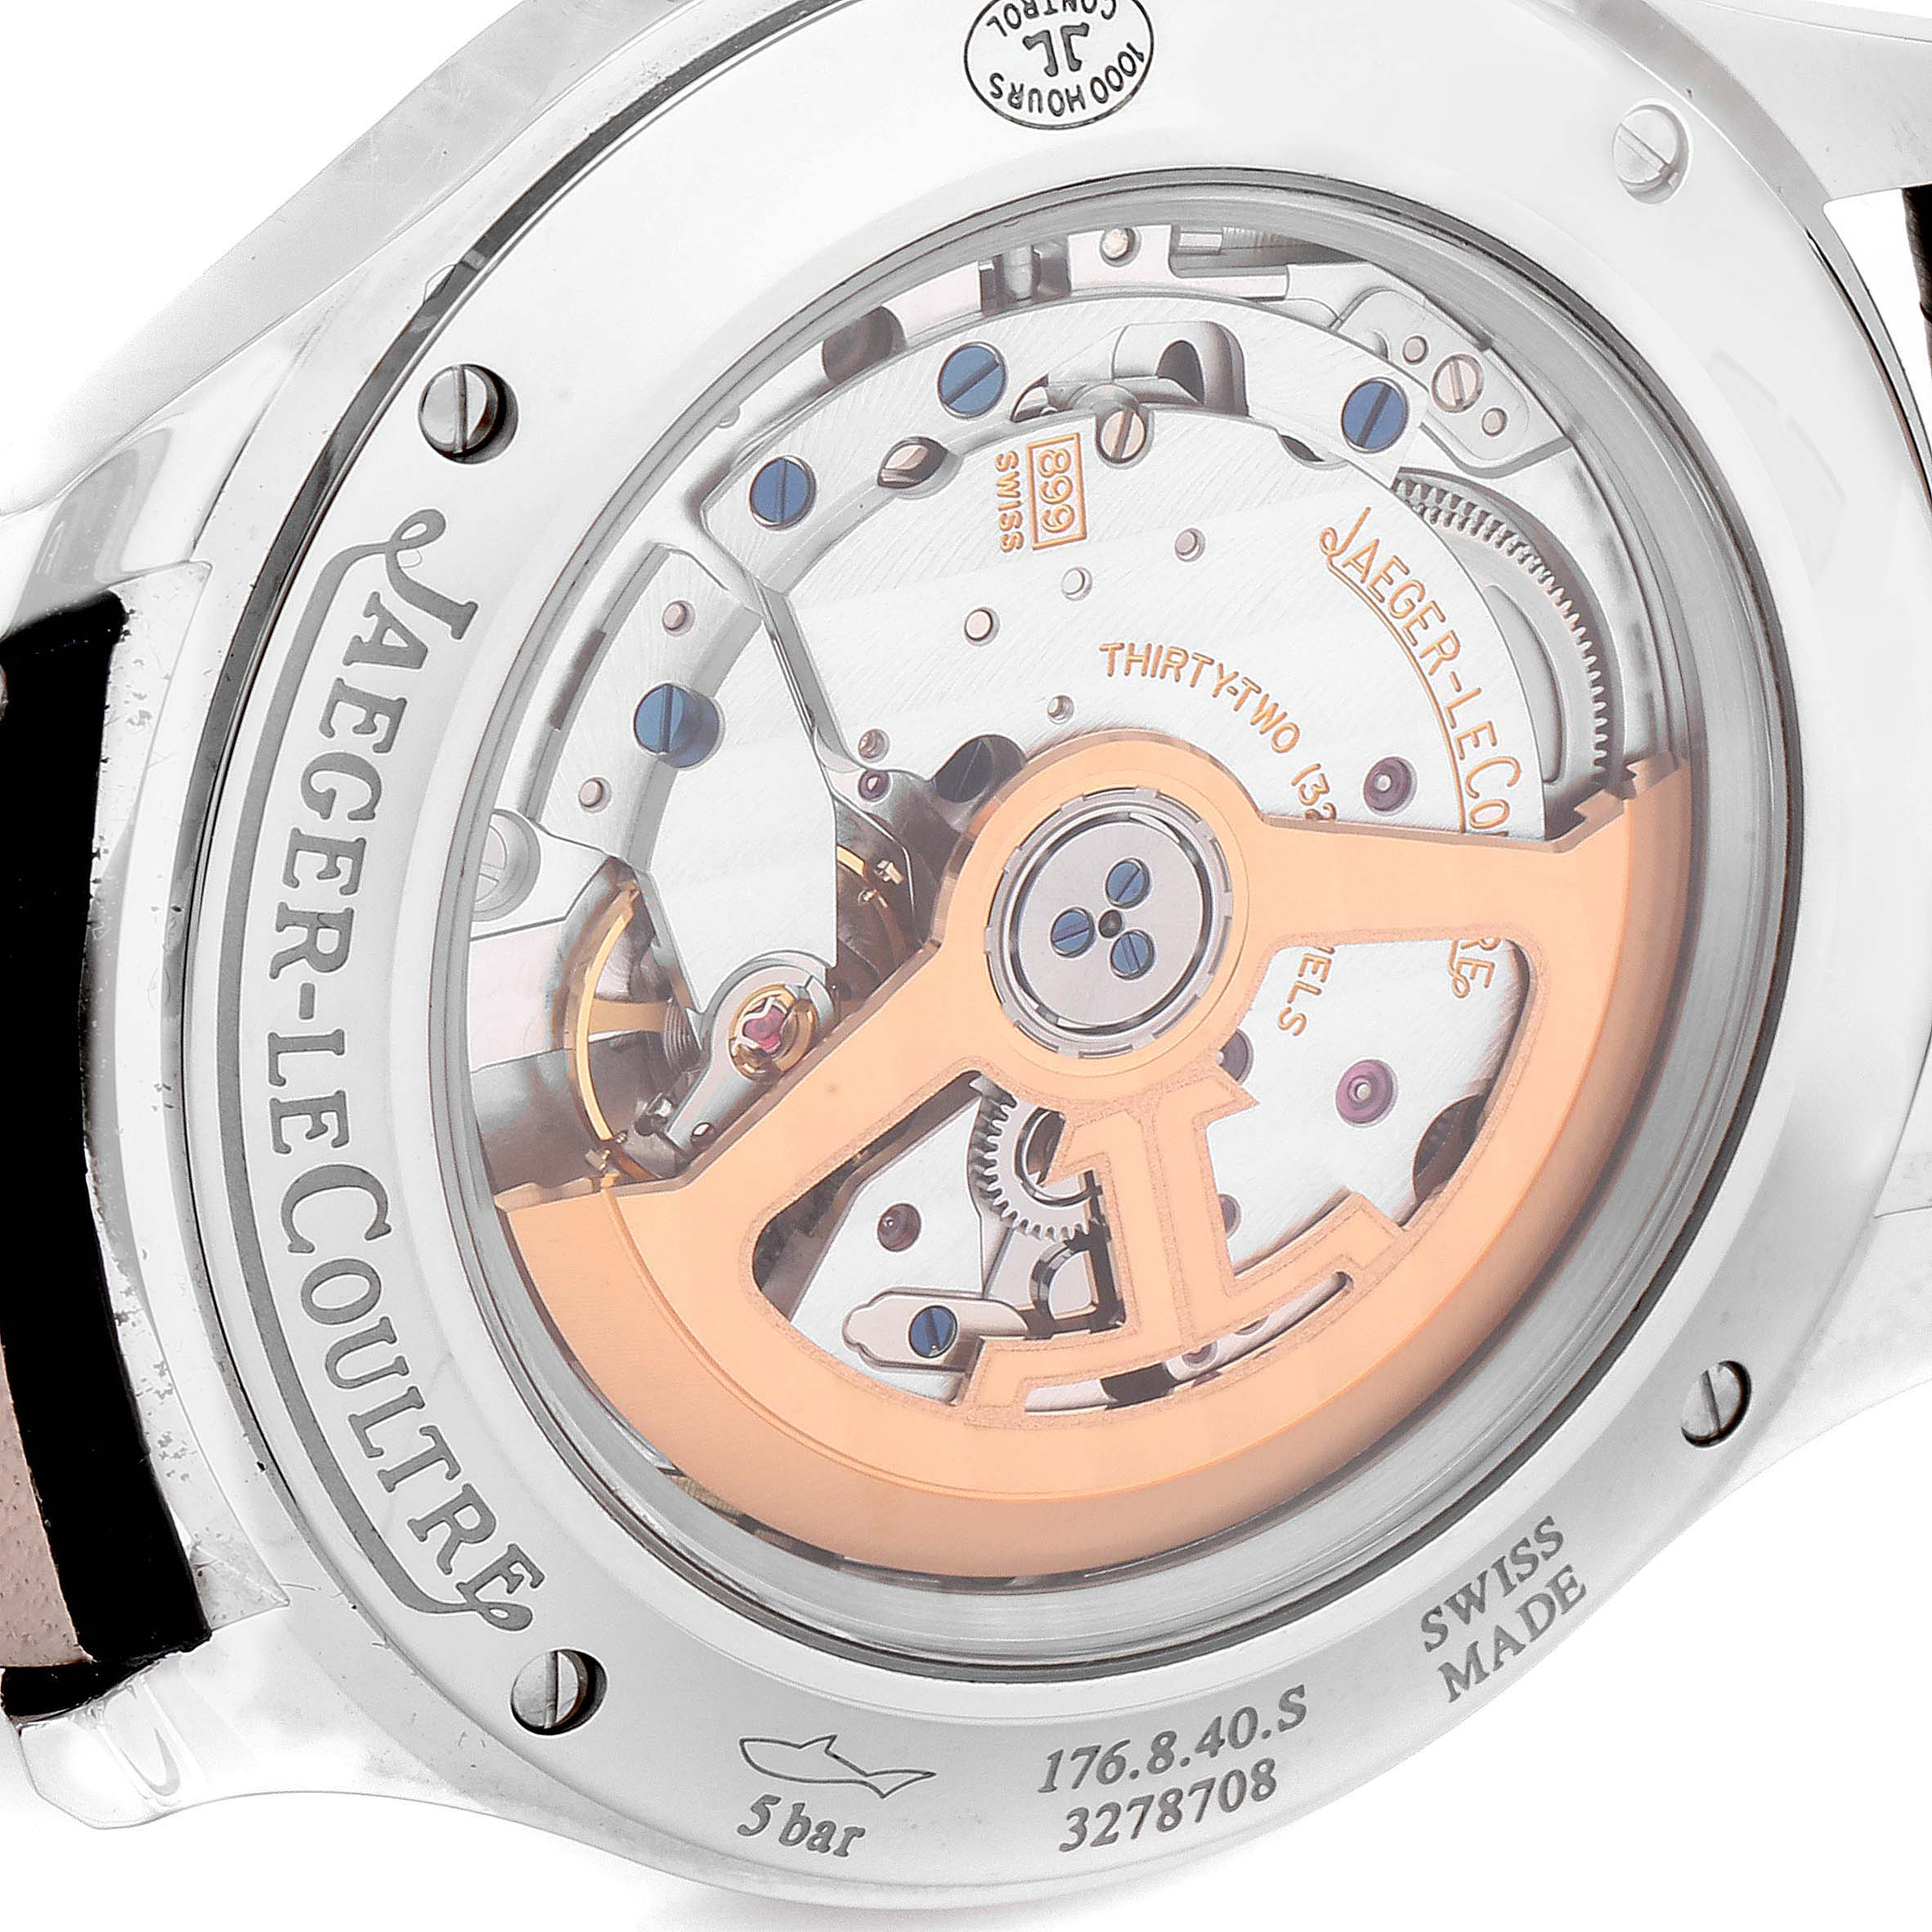 Jaeger Lecoultre Master Control Mens Watch 176.8.40.S Q1548420 Box Papers SwissWatchExpo